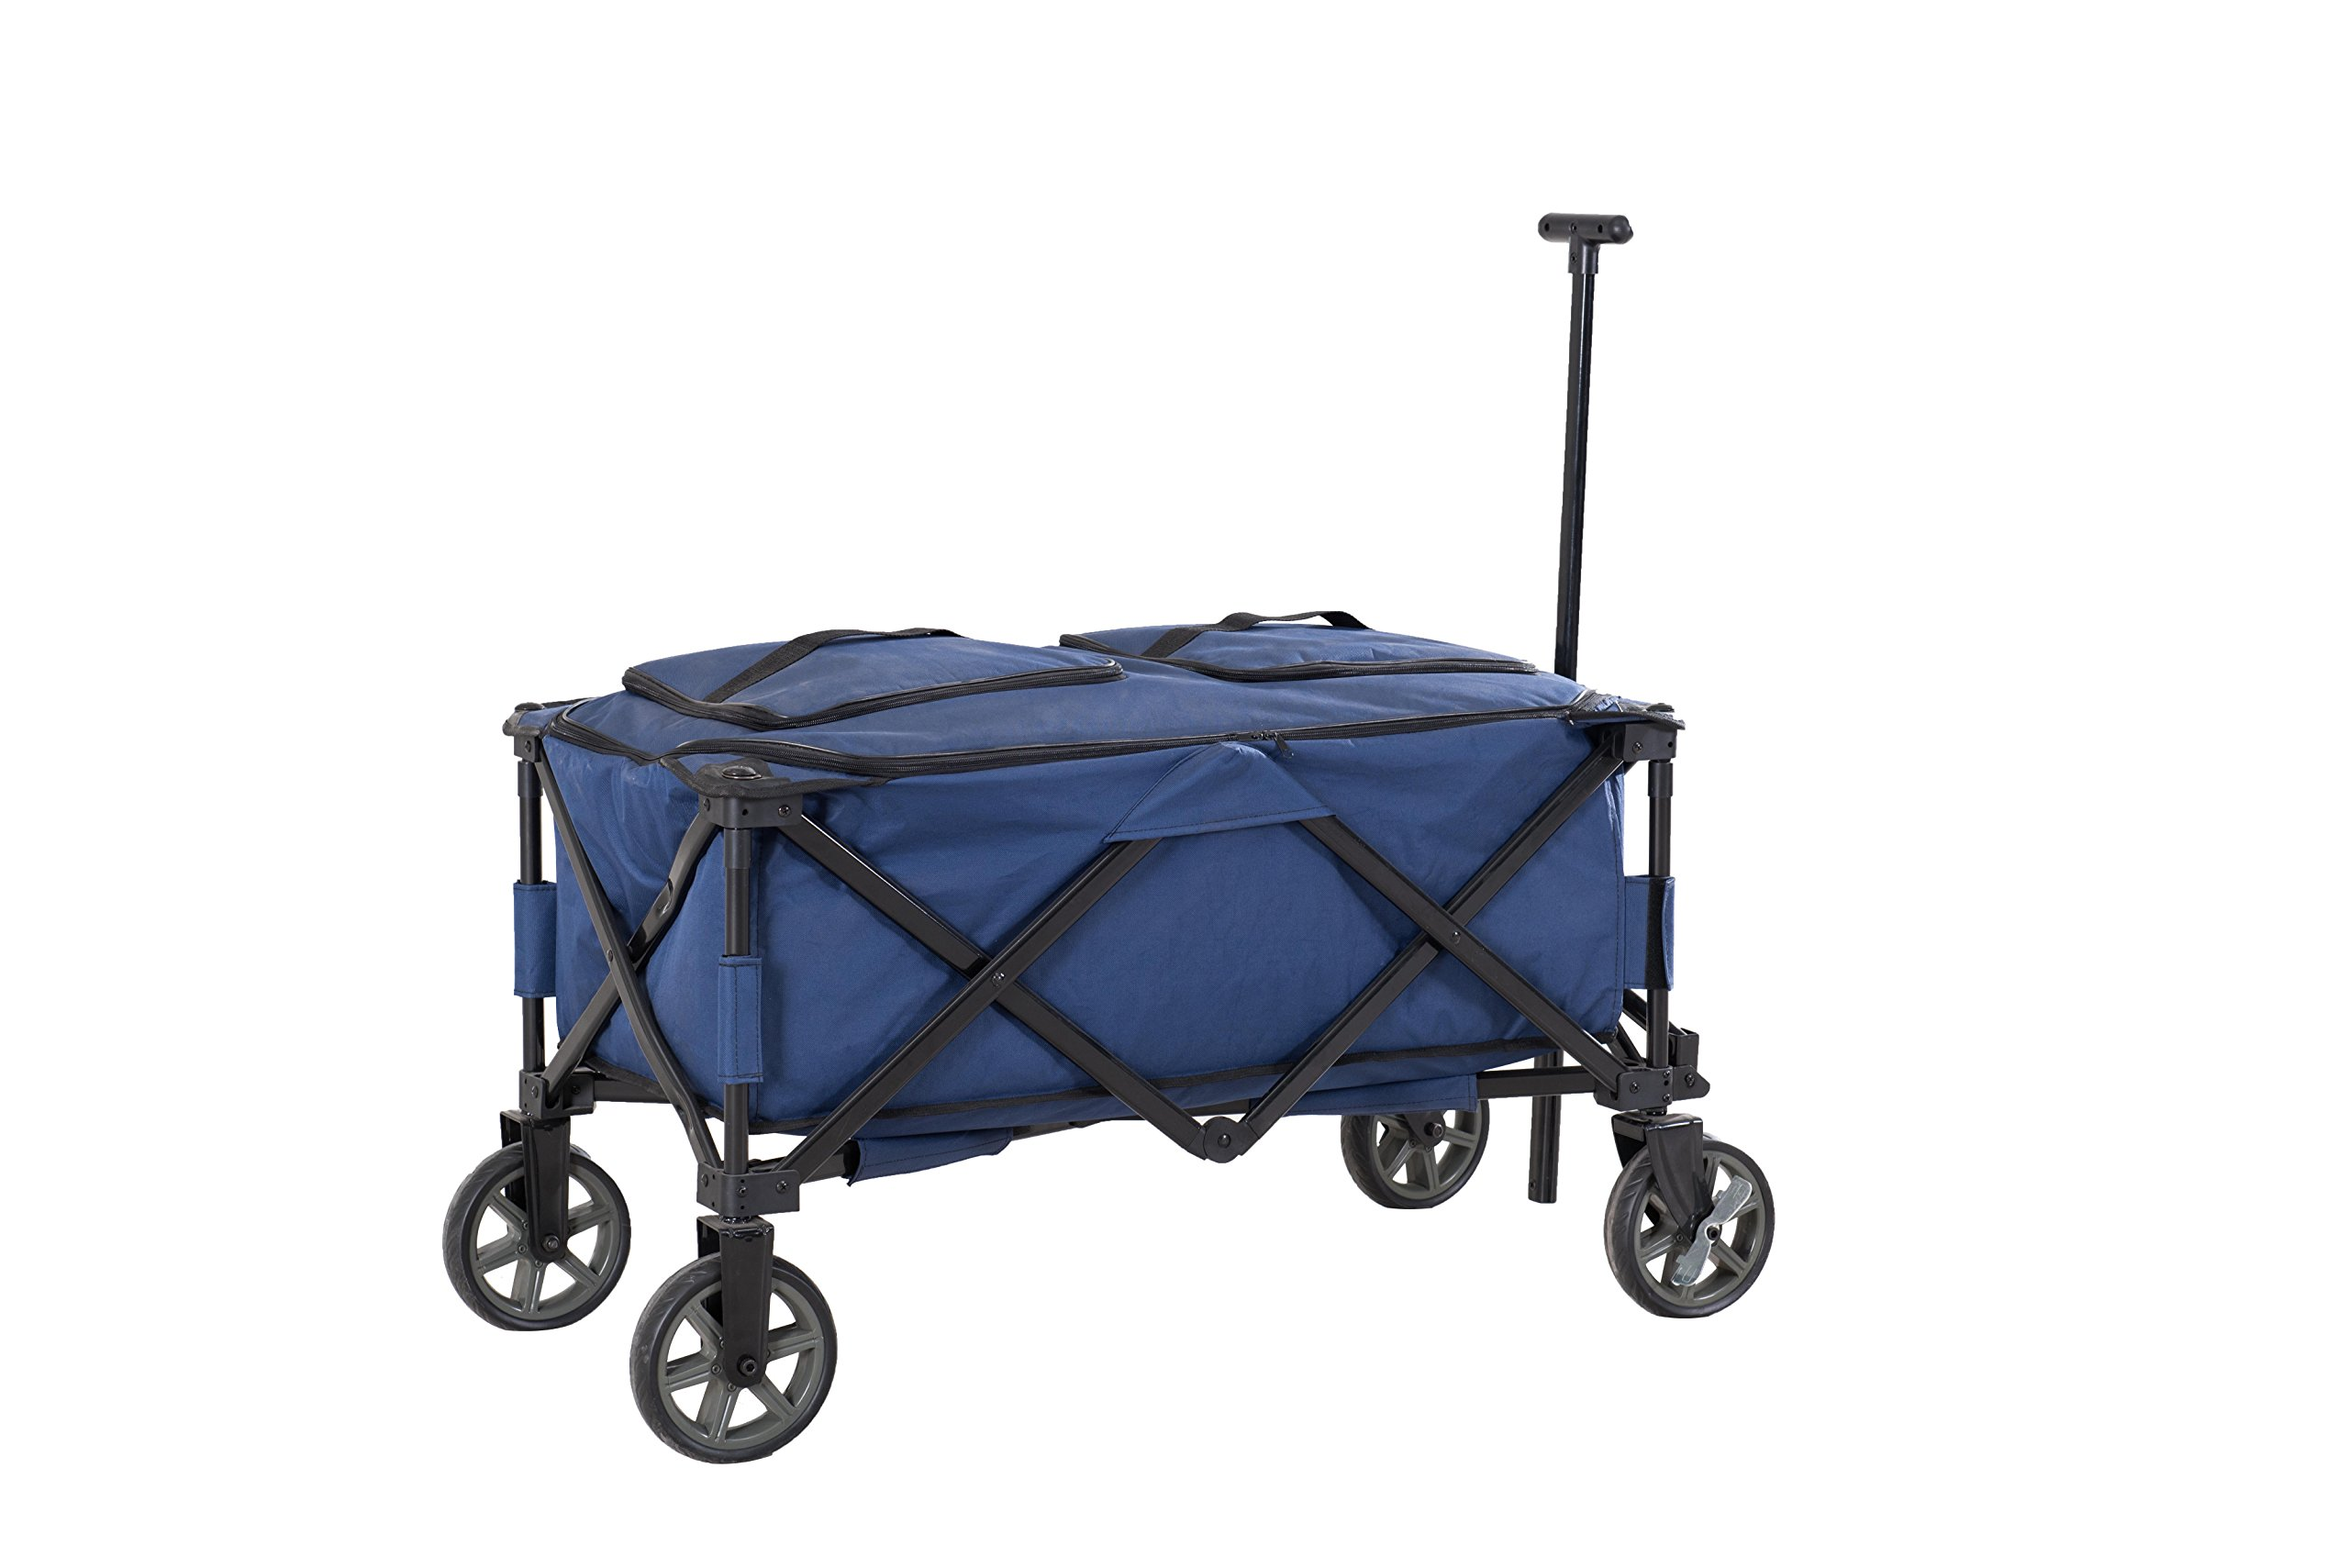 Sunjoy Wheeled Collapsible Beverage Cooler in Blue